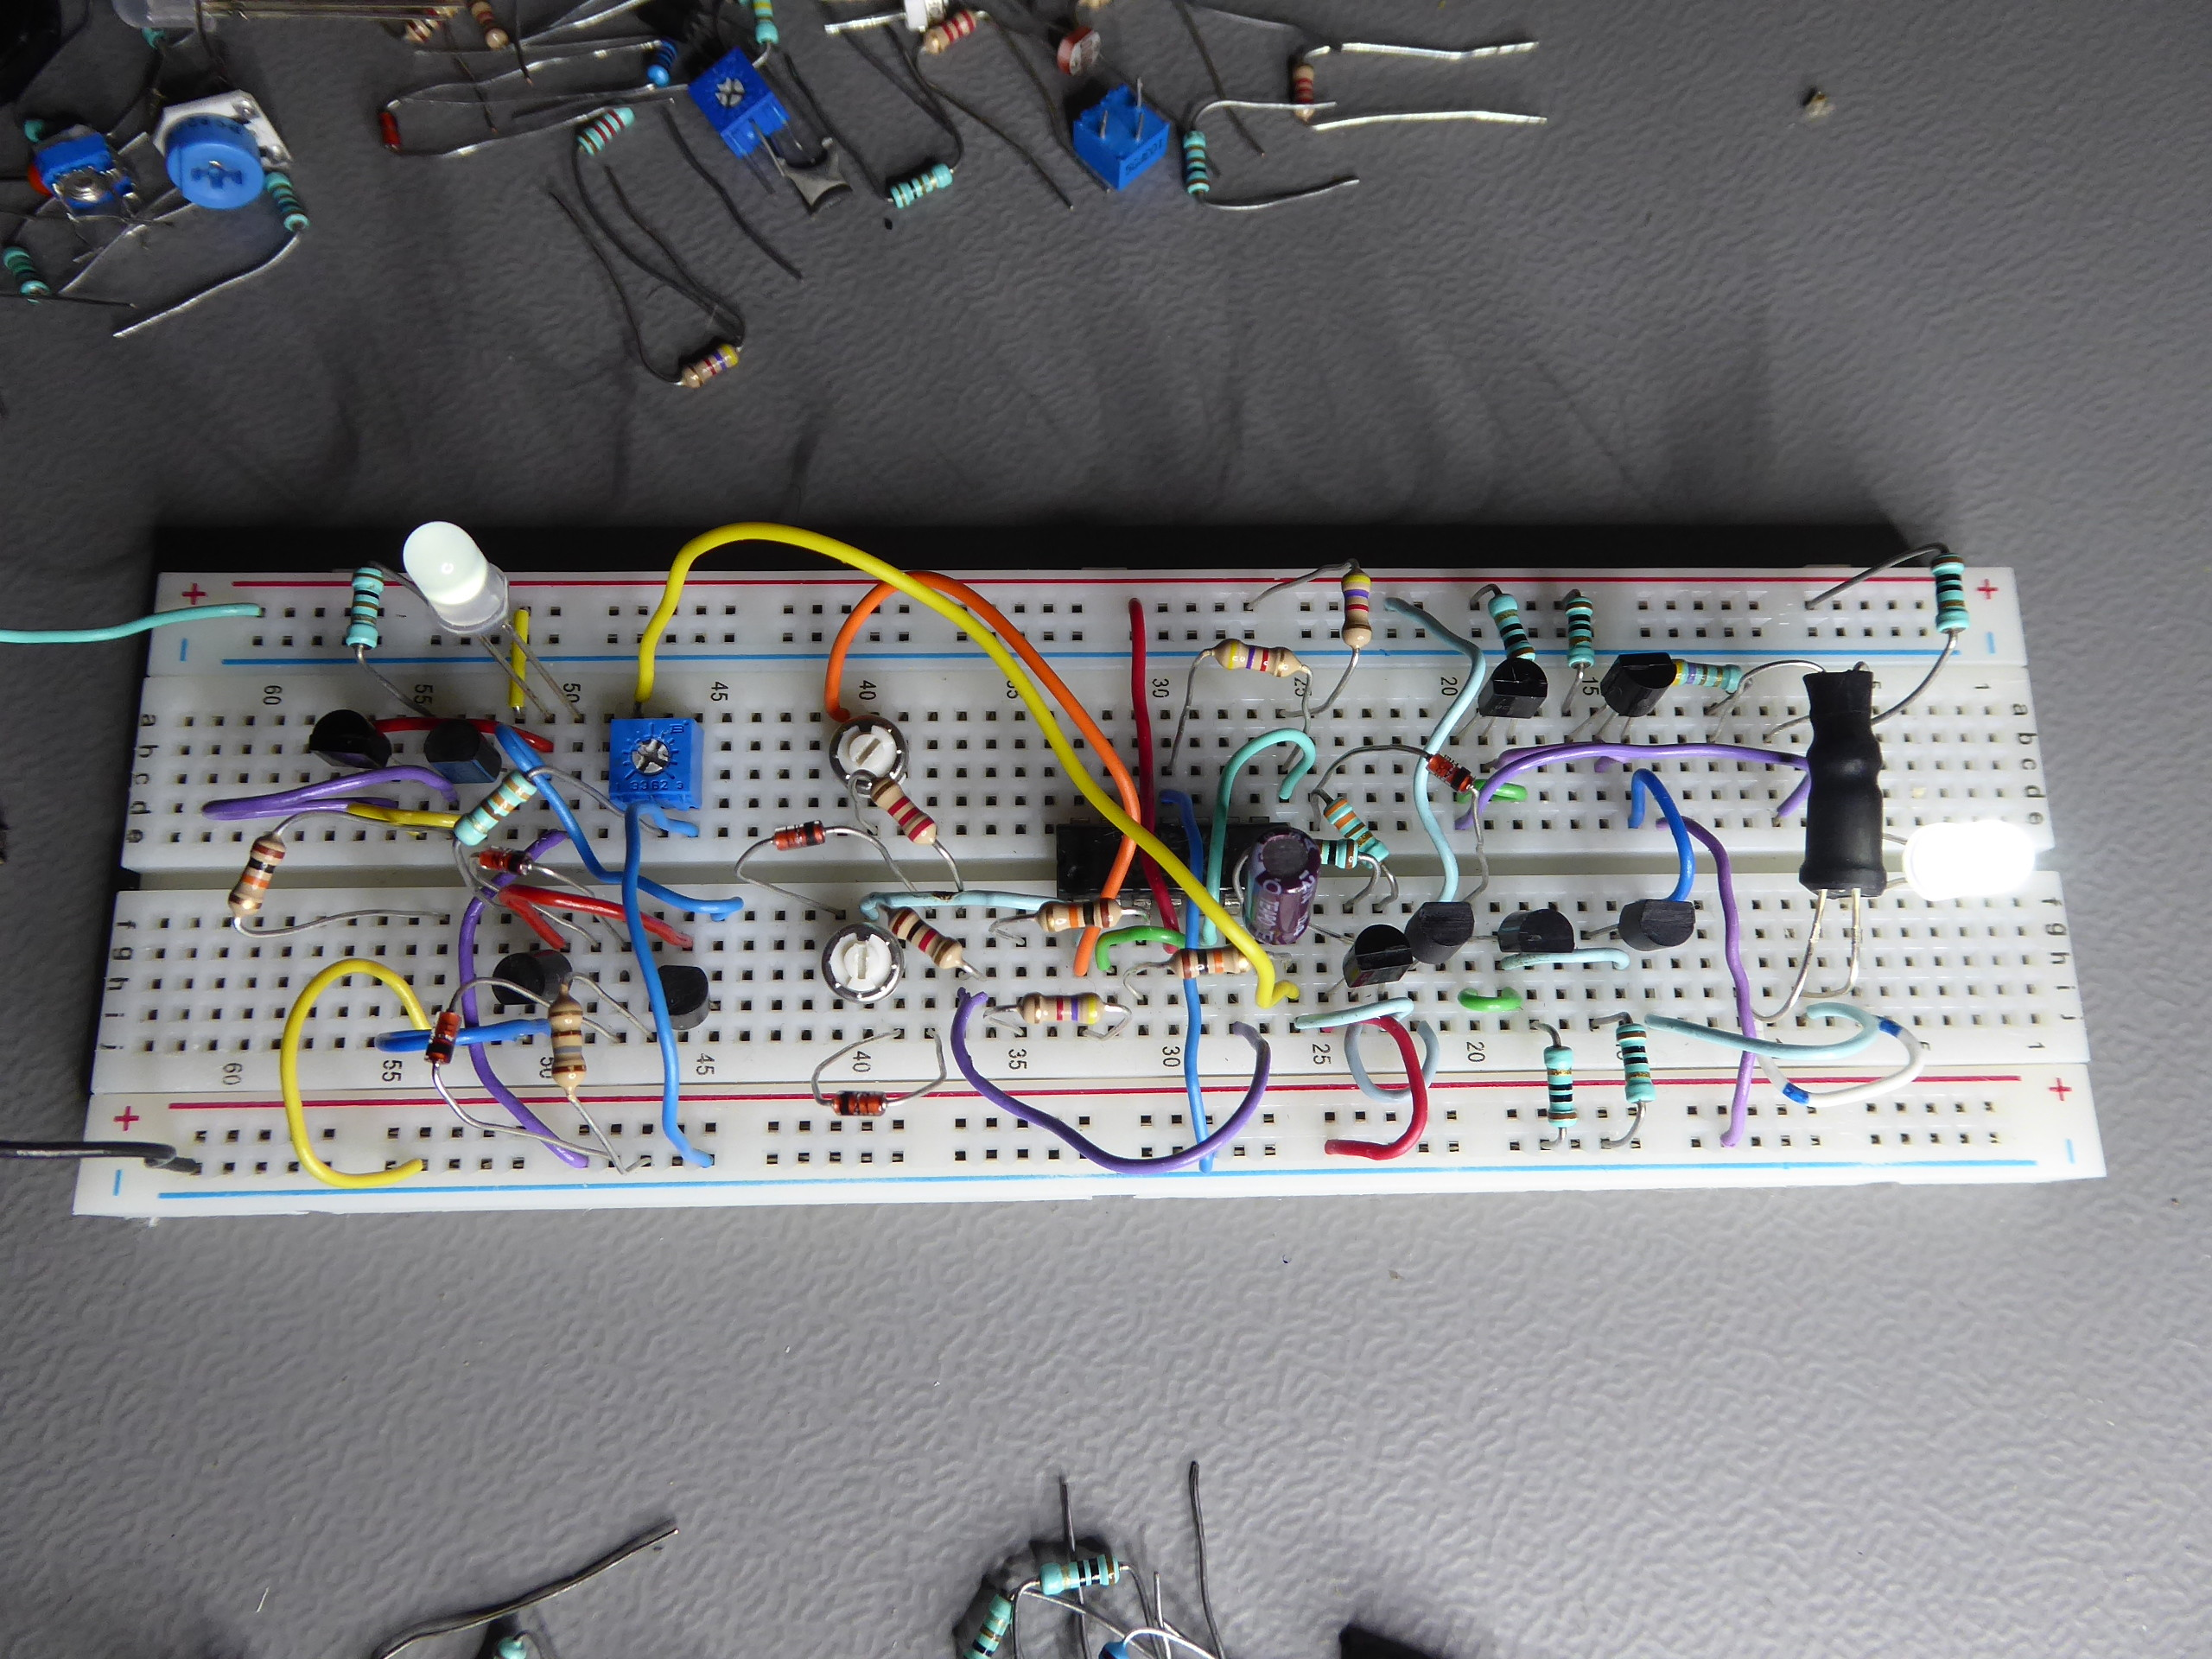 Analogue Alternating Linear Led Fader Using 2 Different Approaches Pwm Electronics Forum Circuits Projects And Microcontrollers Elektor Labs Magazine